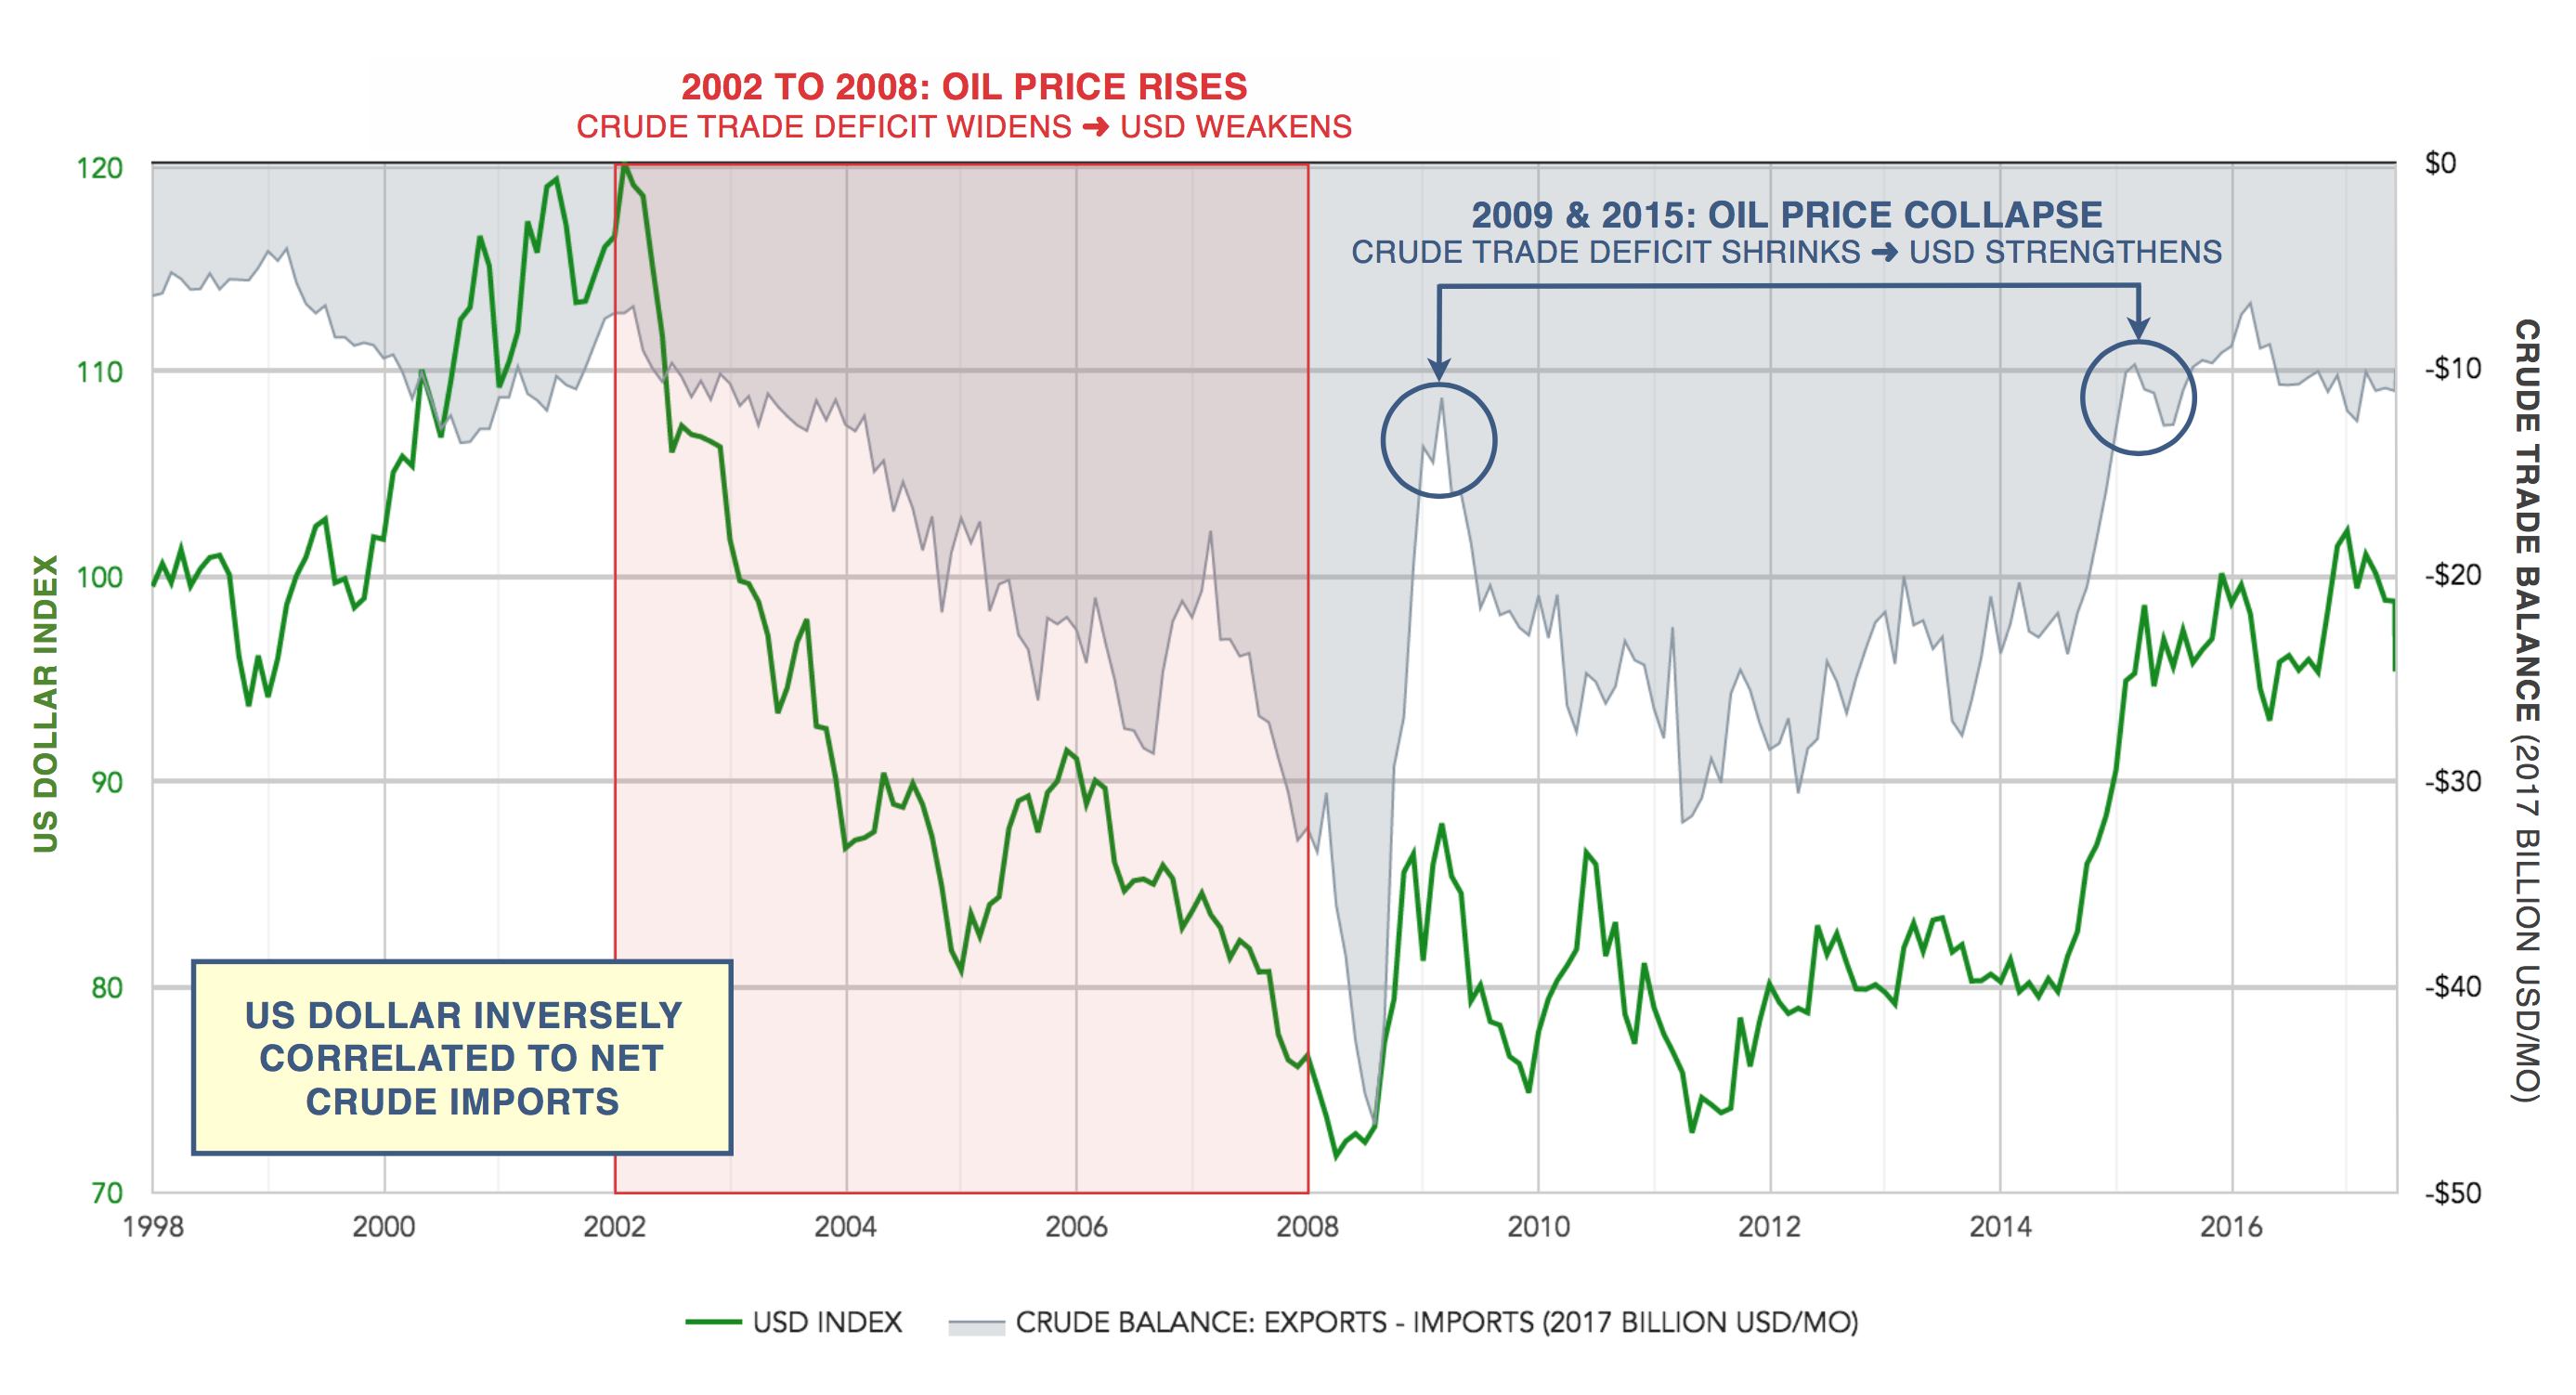 oil prices versus crude trade balance - imports and exports